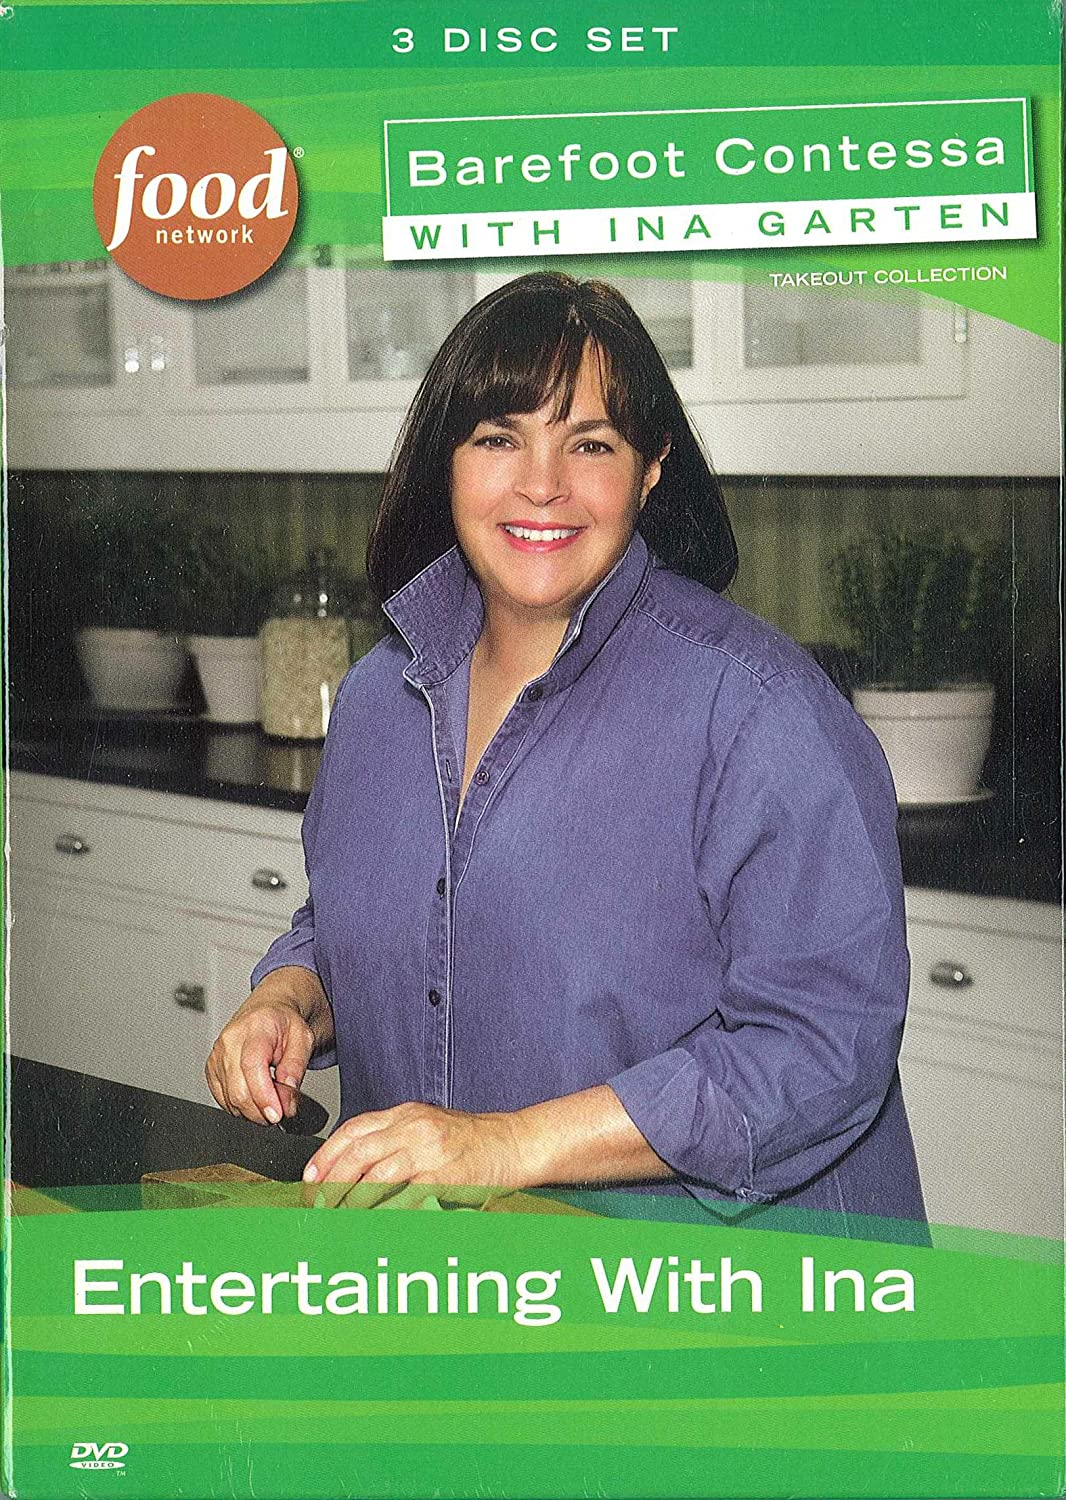 Barefoot Contessa with Ina Garten: Entertaining with Ina